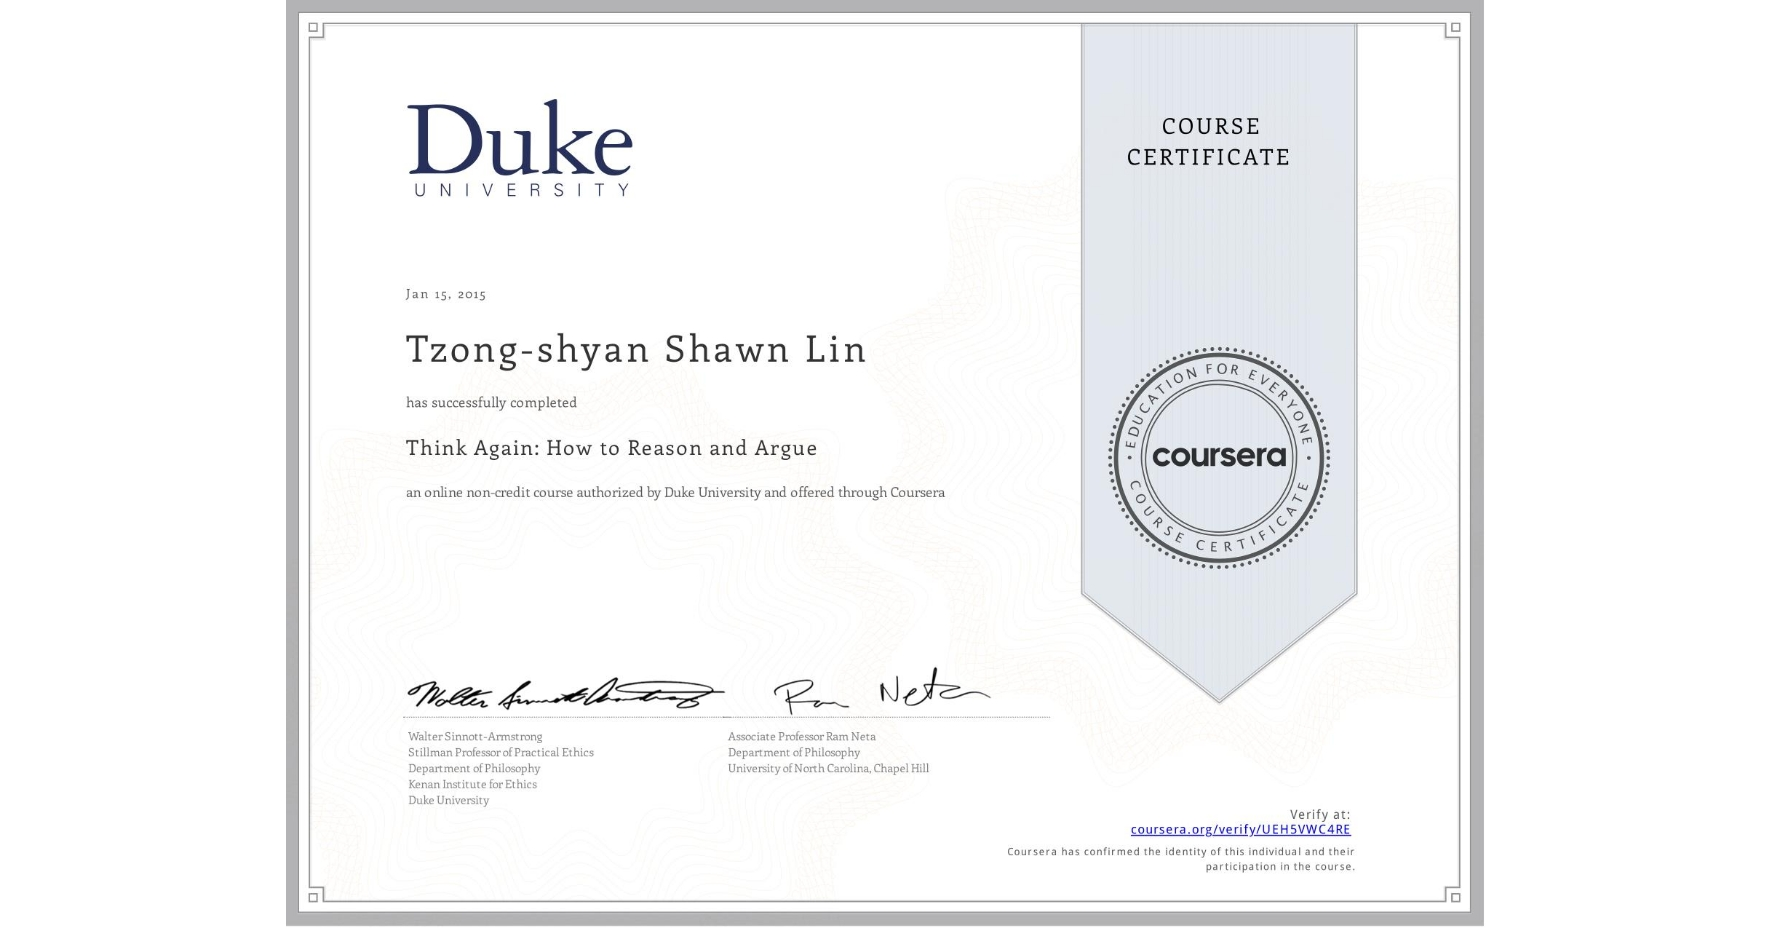 View certificate for Tzong-shyan Shawn Lin, Think Again: How to Reason and Argue, an online non-credit course authorized by Duke University and offered through Coursera